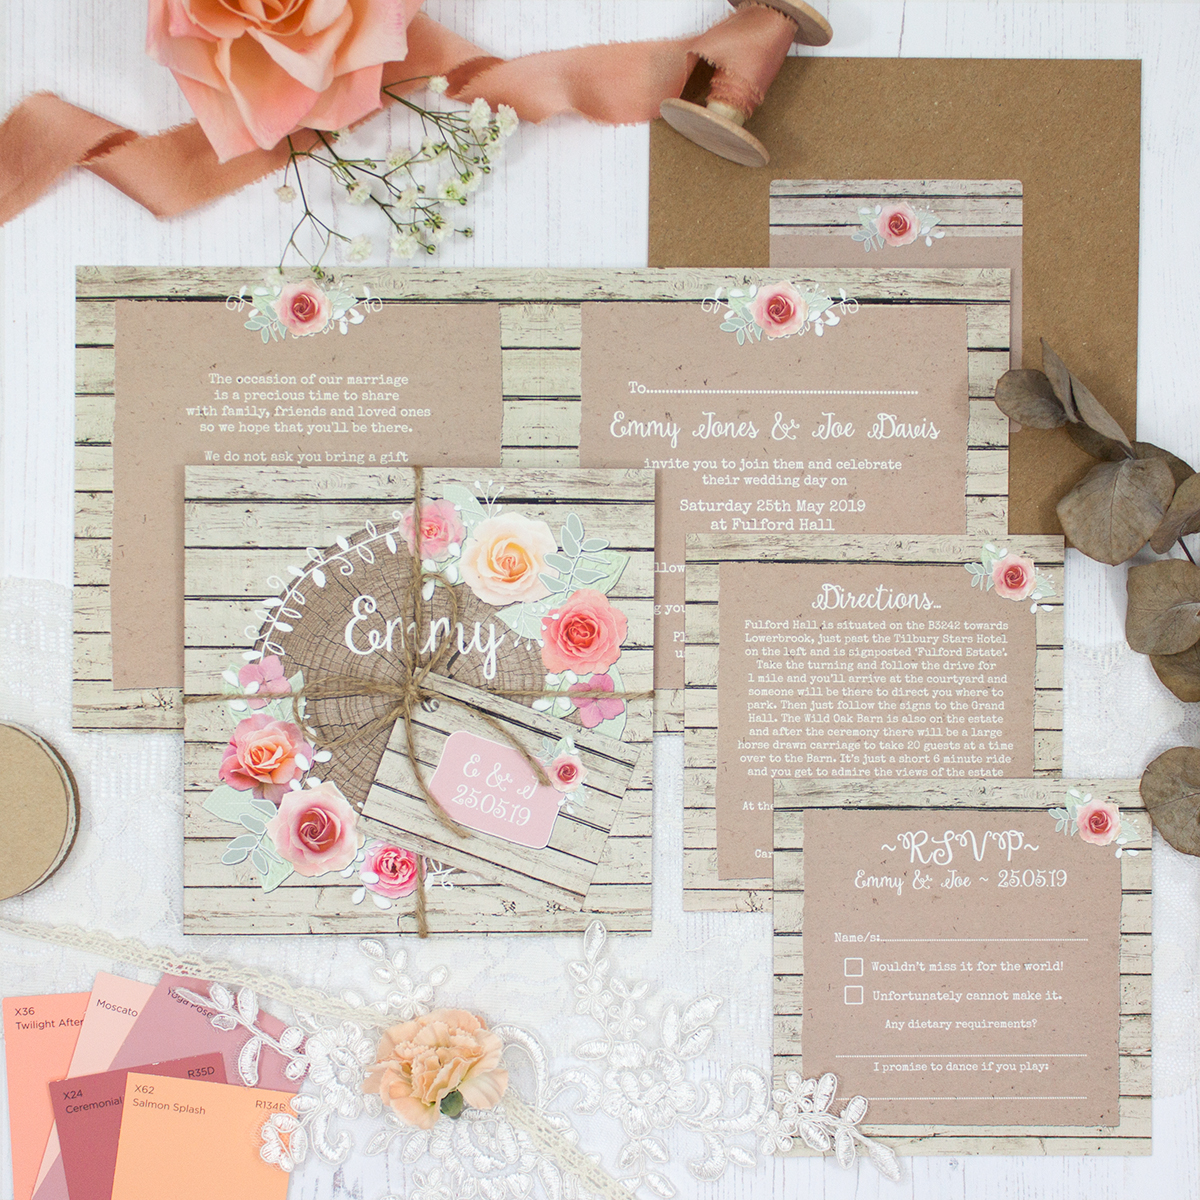 Flower Crown Wedding showing invitation